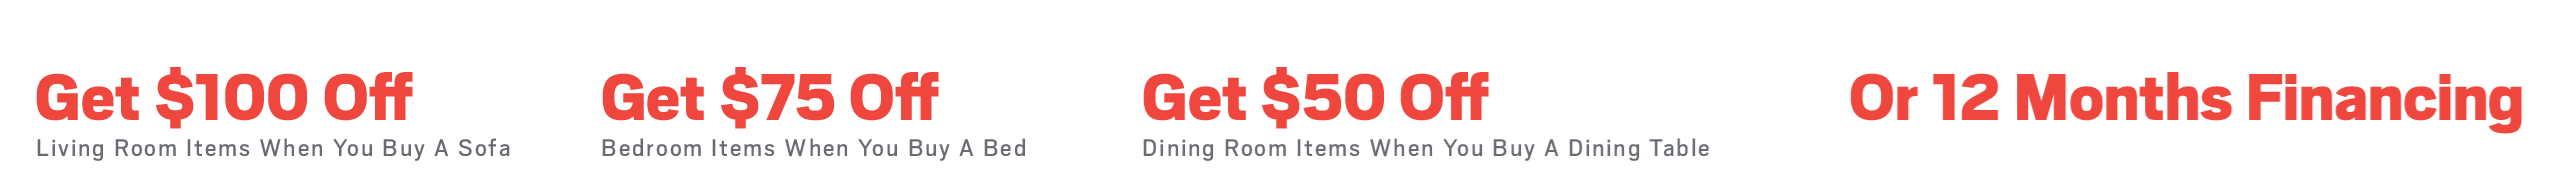 Get $100 living room items when you buy a sofa, get $75 off bedroom items when you buy a bed, get $50 off dining room items when you buy a dining table, or ask about 12 months financing; see store for details